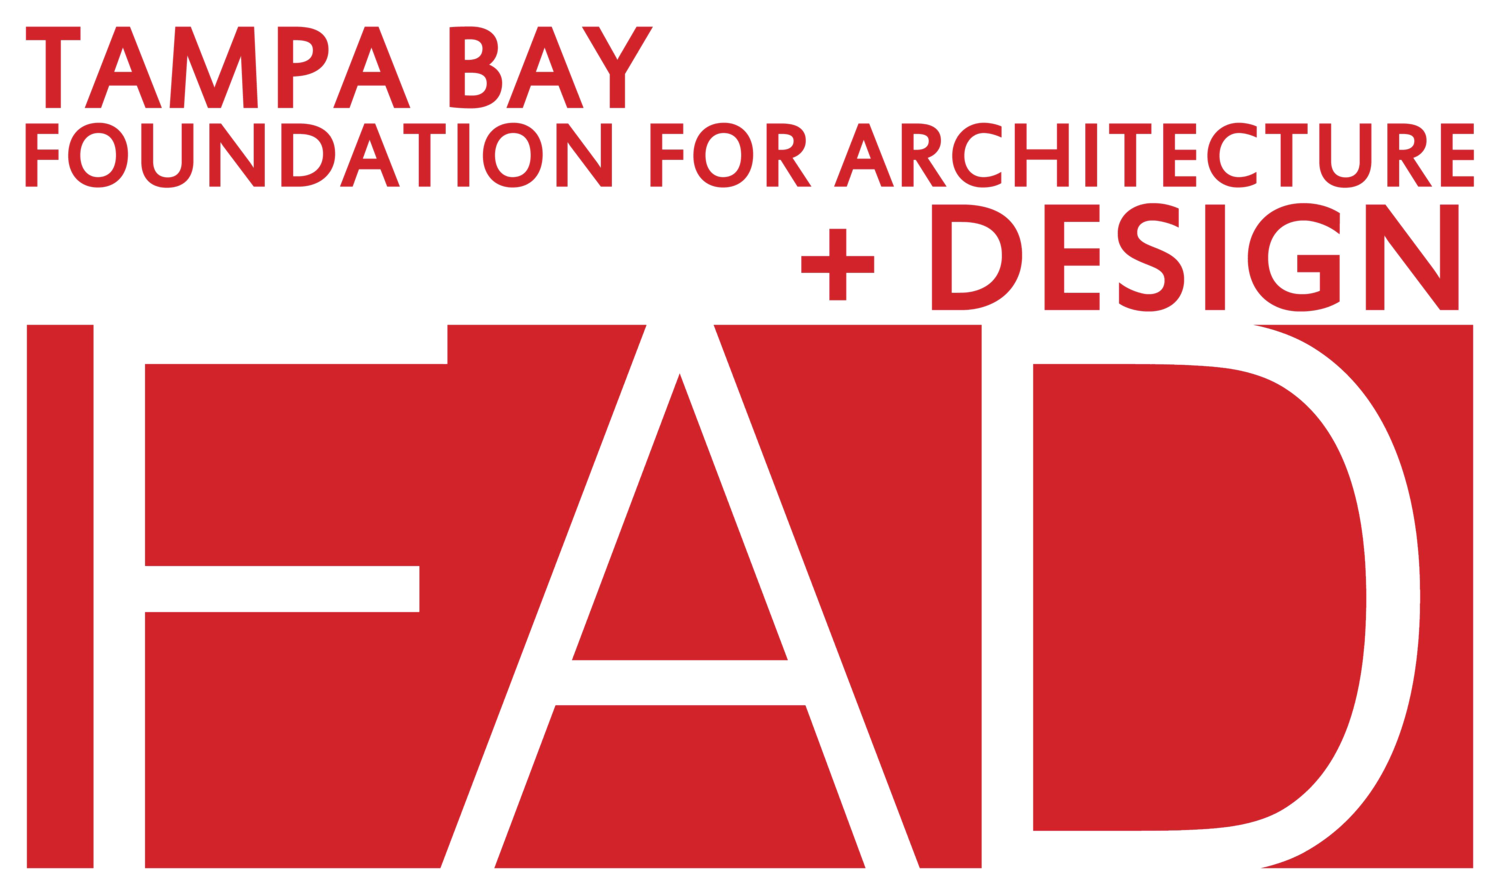 Tampa Bay Foundation for Architecture & Design